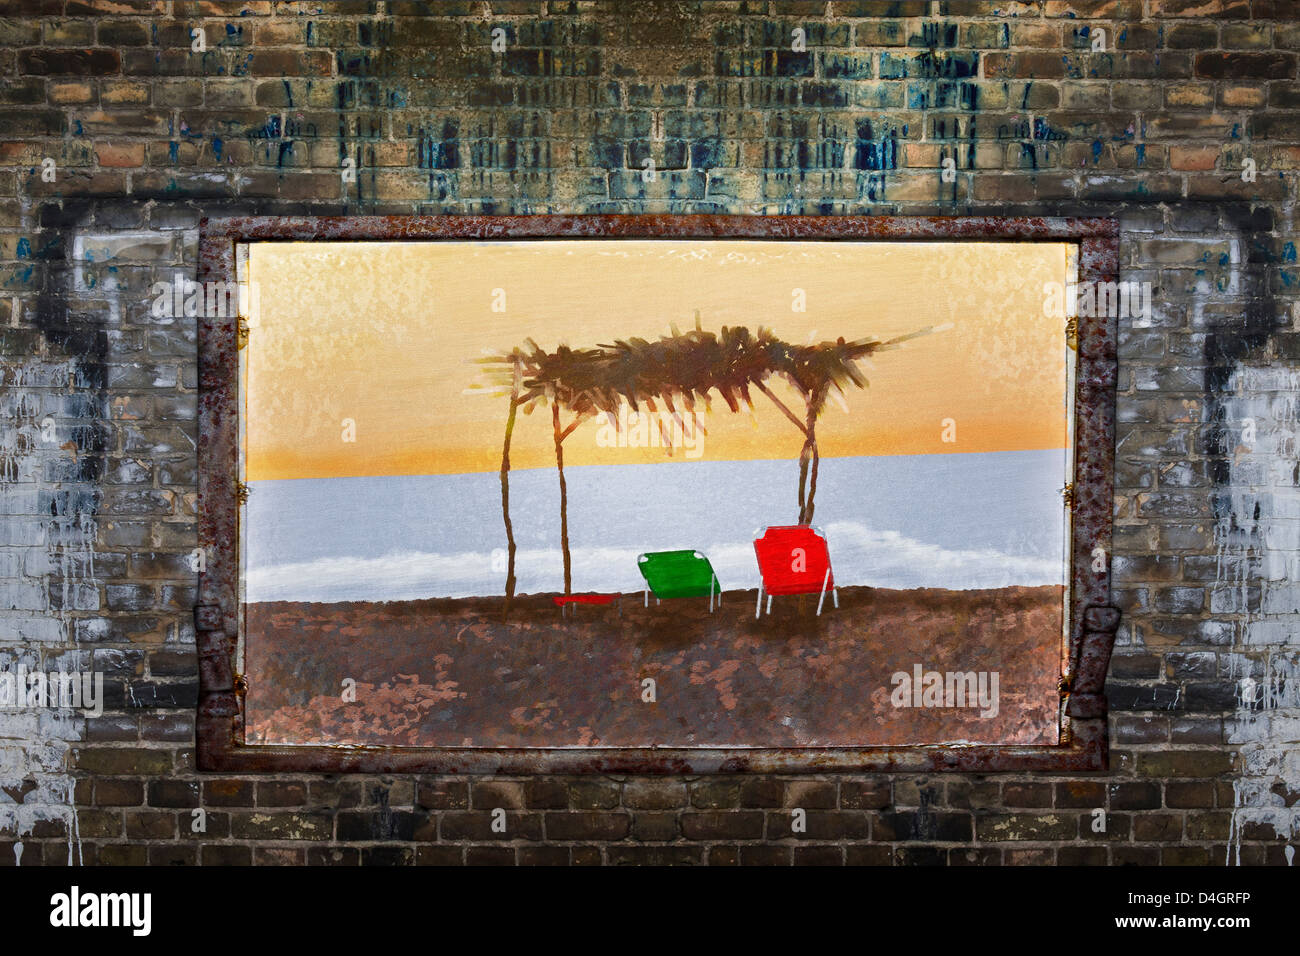 Filthy brick wall with good mood illustration of one beach scene - Stock Image